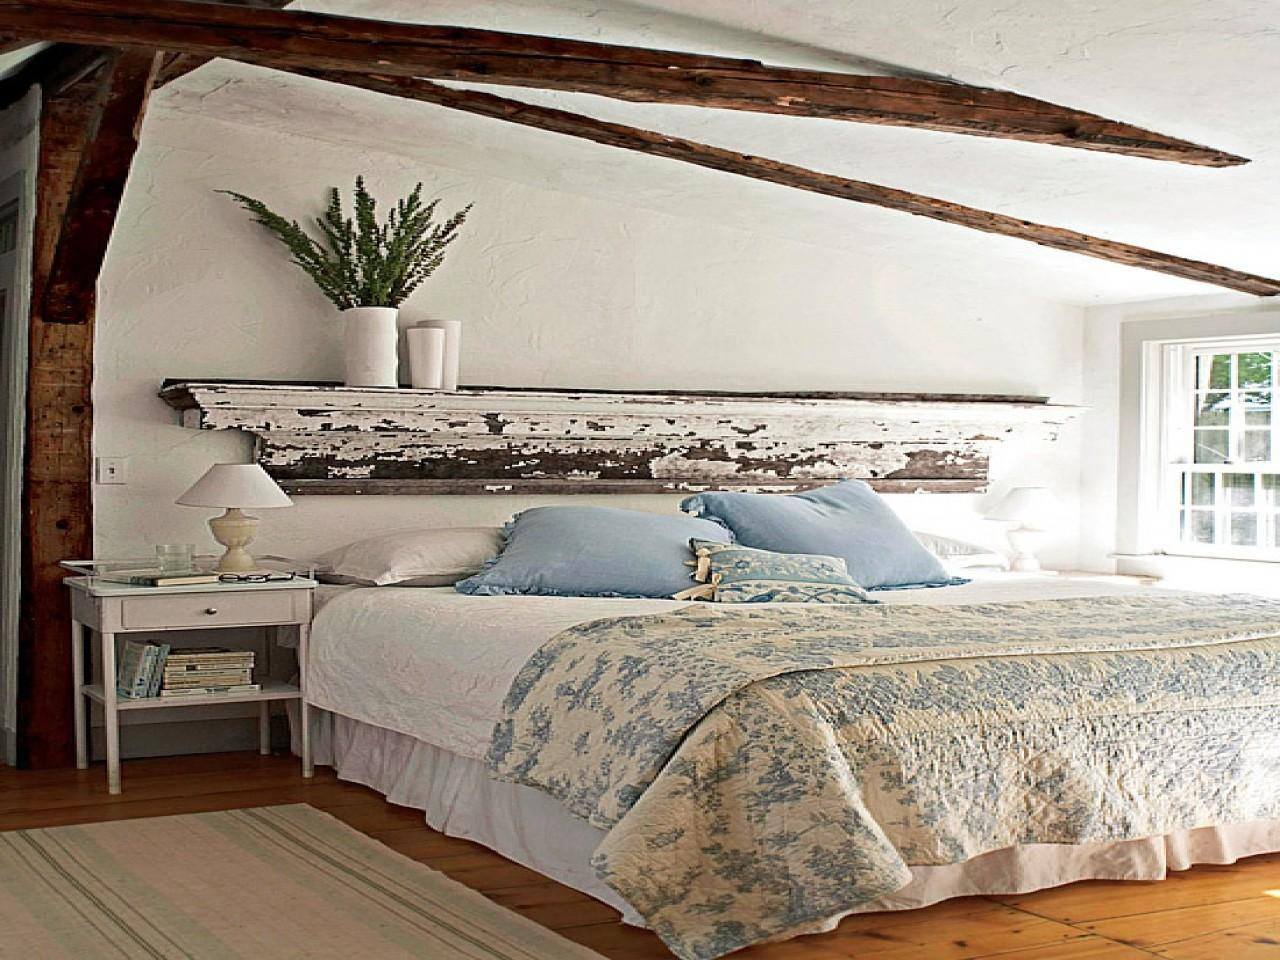 Rustic Chic Decorating Ideas Diy Projects